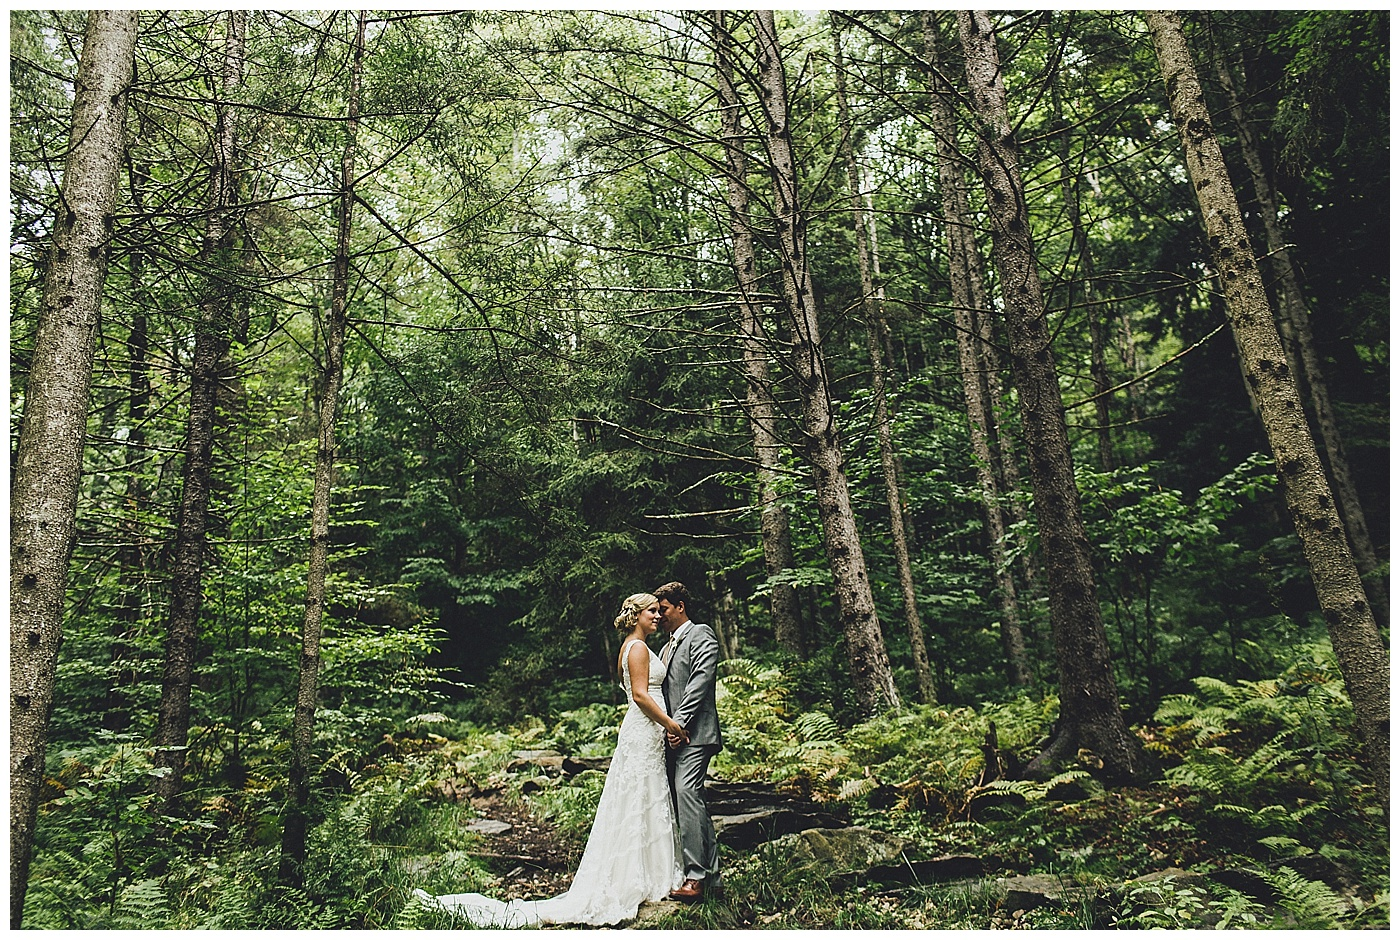 Gorgeous, Unique, Wedding Photo in the Vermont Woods at Riverside Farm.